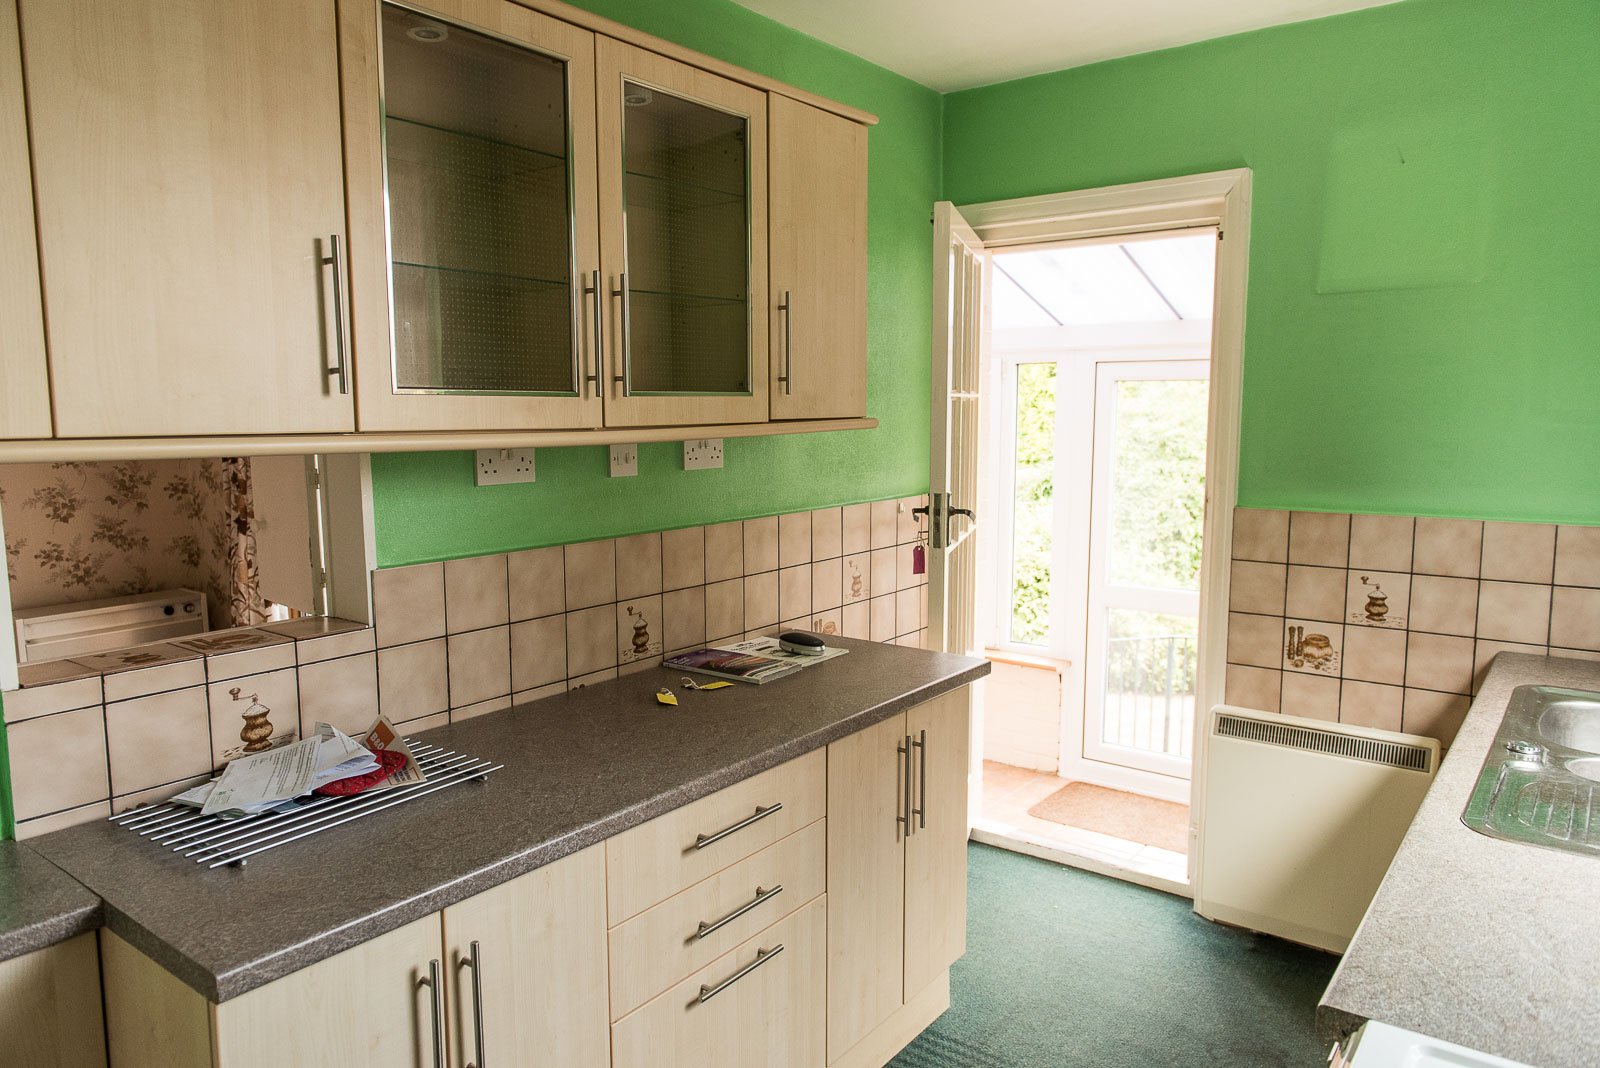 NEWISH KITCHEN WITH ANCIENT TILES & A POP OF APPLE GREEN. FAB COMBO.